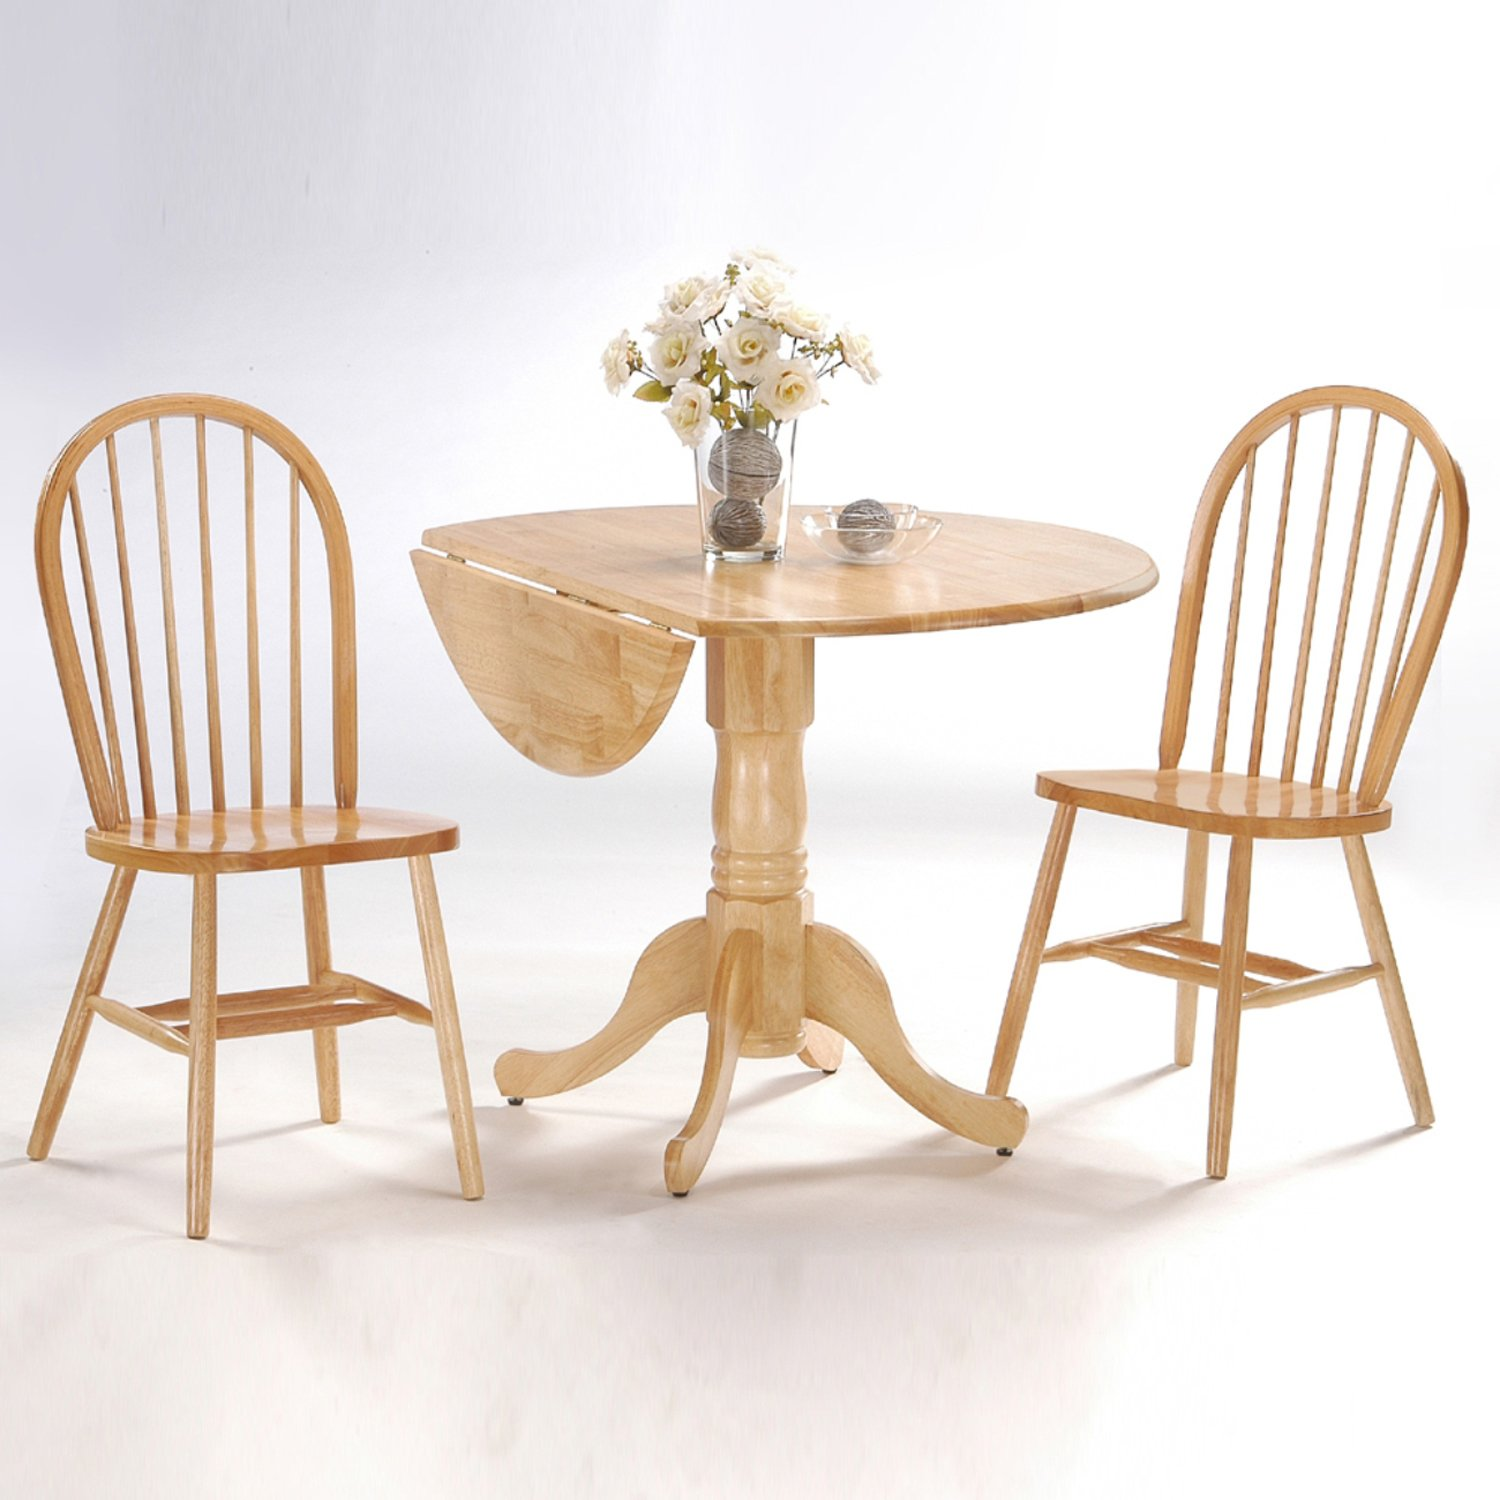 International Concepts 3-Piece 42-Inch Dual Drop Leaf Pedestal Table with 2 Windsor Chairs, Natural Finish by International Concepts (Image #1)